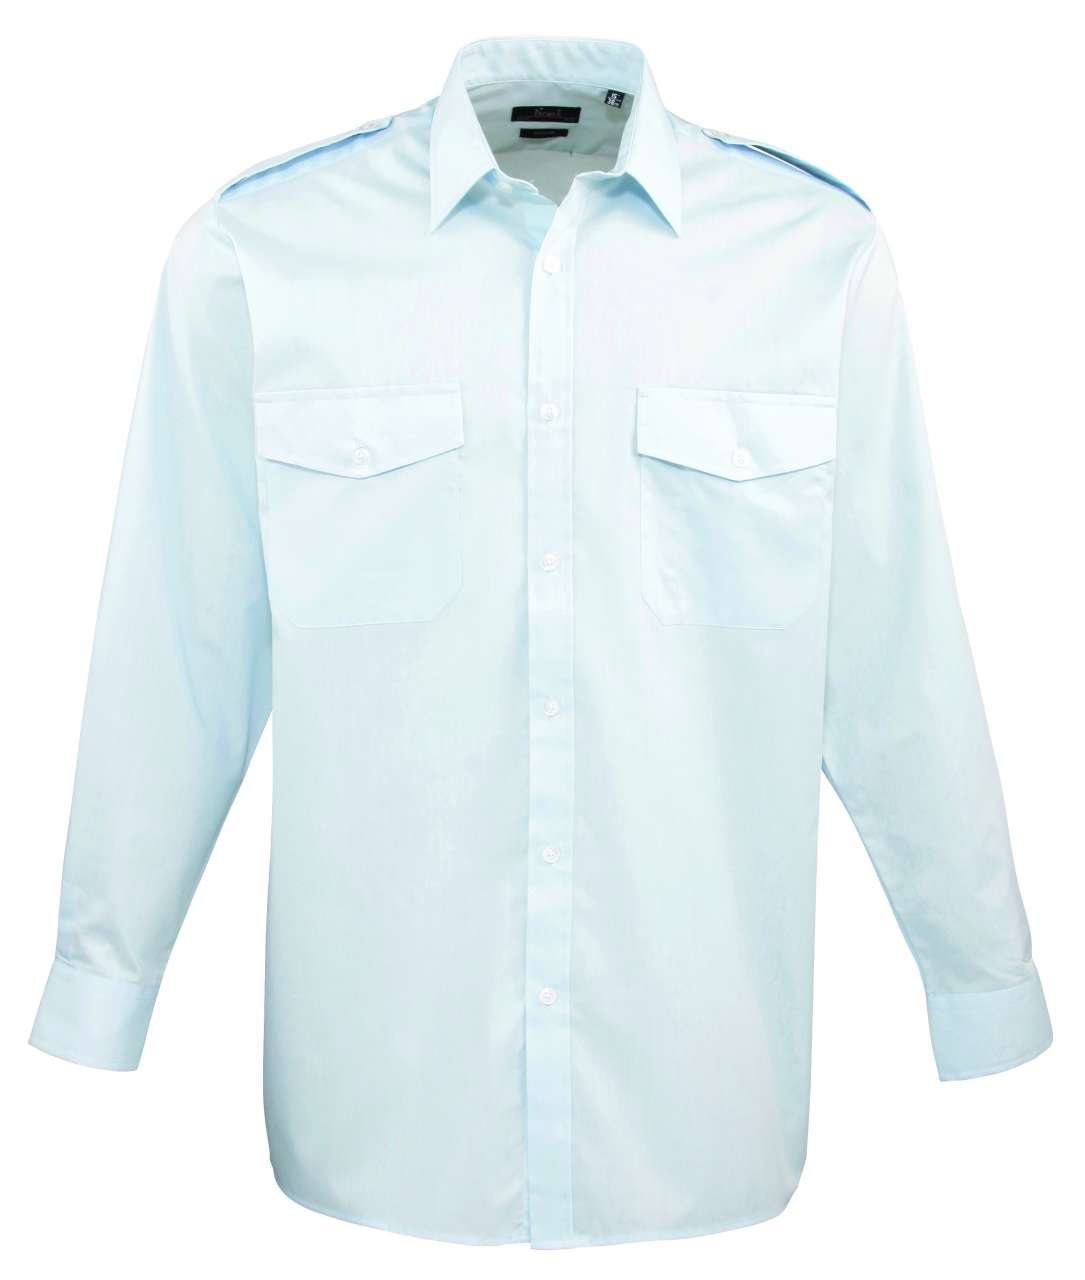 MEN'S LONG SLEEVE PILOT SHIRT